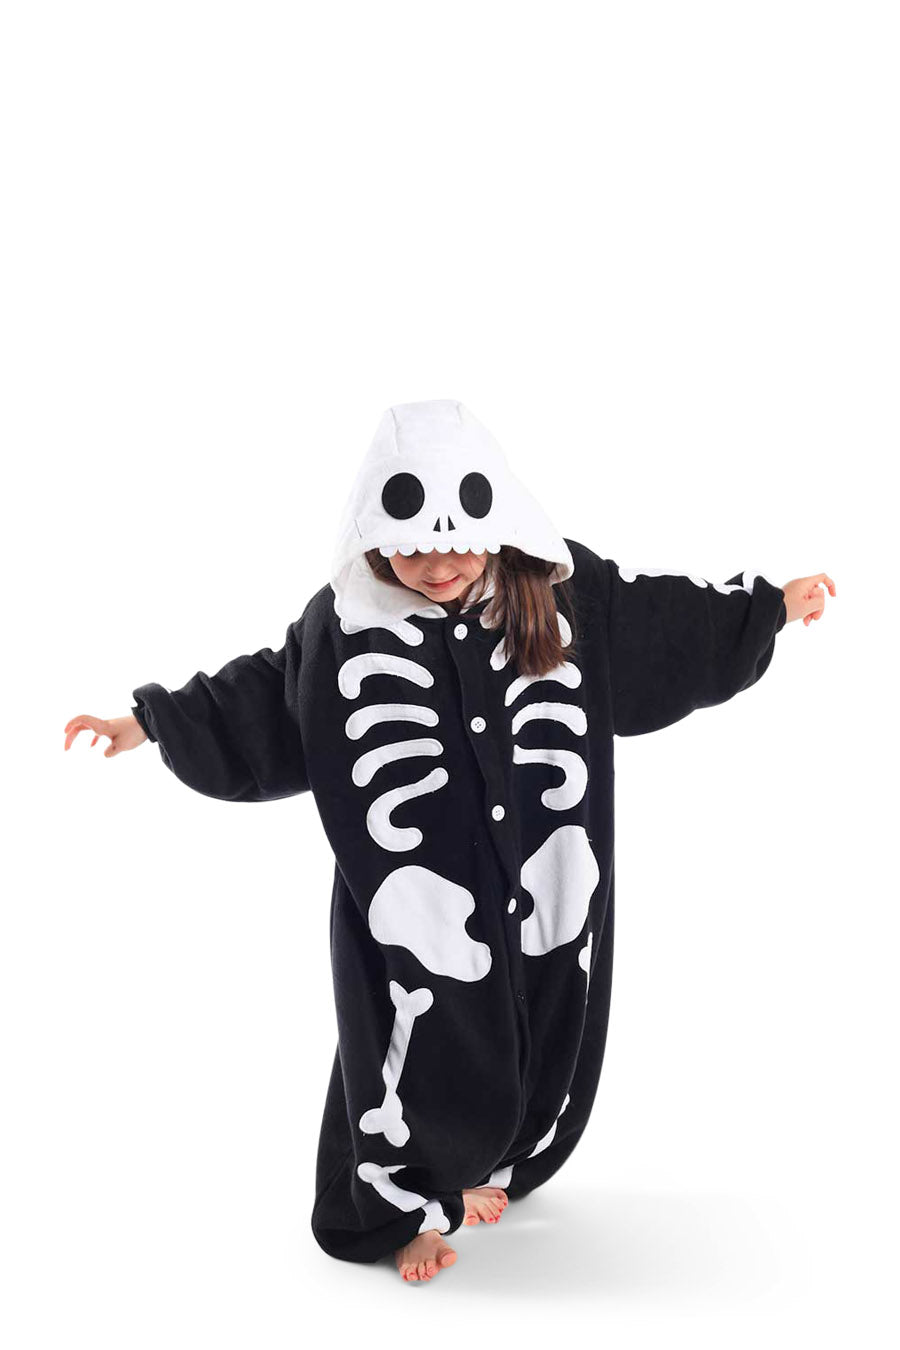 Kids Skeleton Animal Kigurumi Onesie Costume Pajamas Black White Main Seconary 130cm